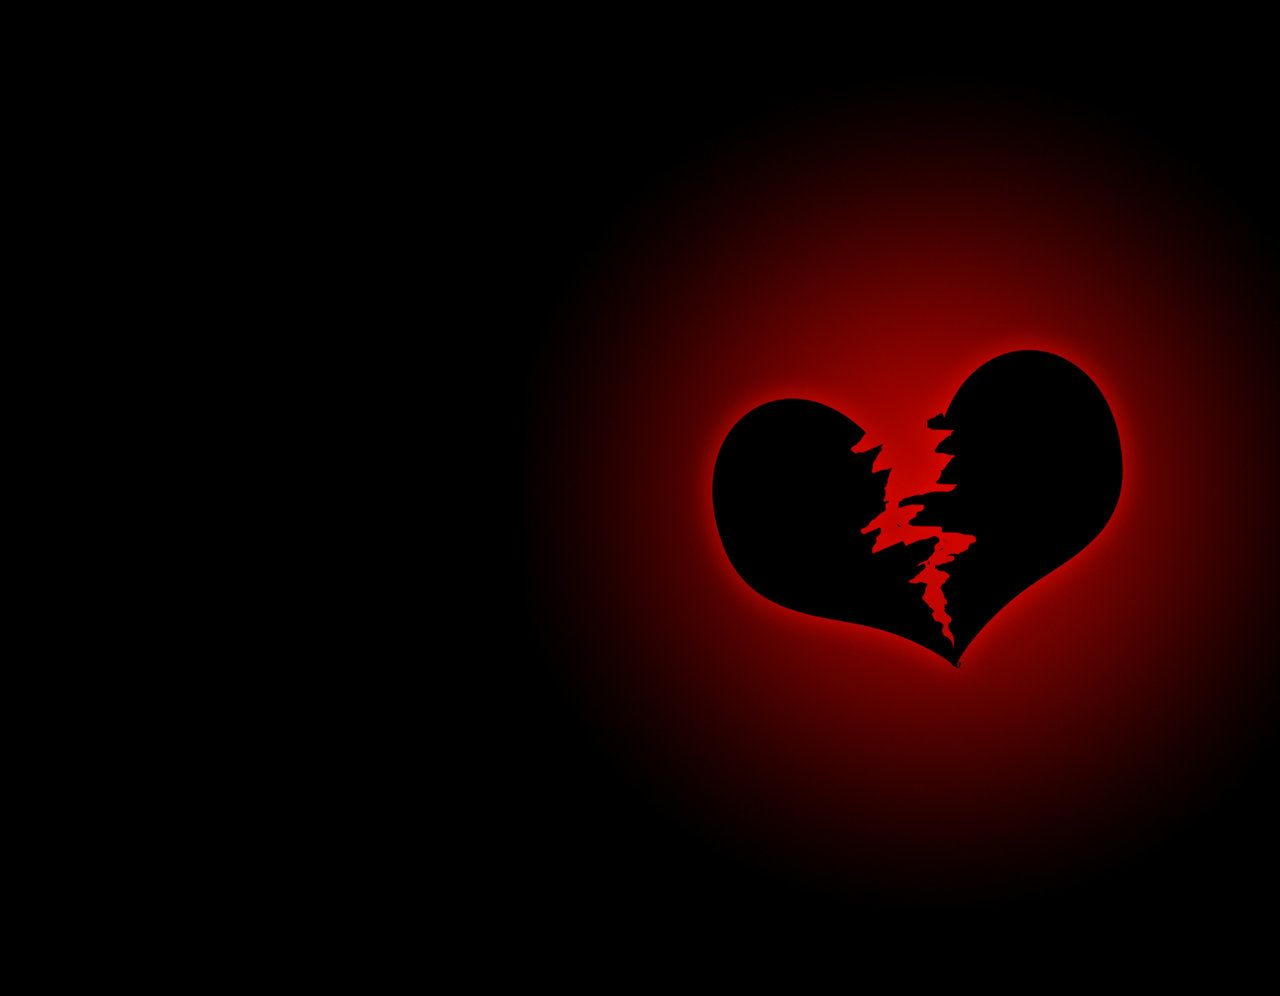 Love Vale Wallpapers : Broken hearts wallpaper #97985 at Love Wallpapers 1080p ...